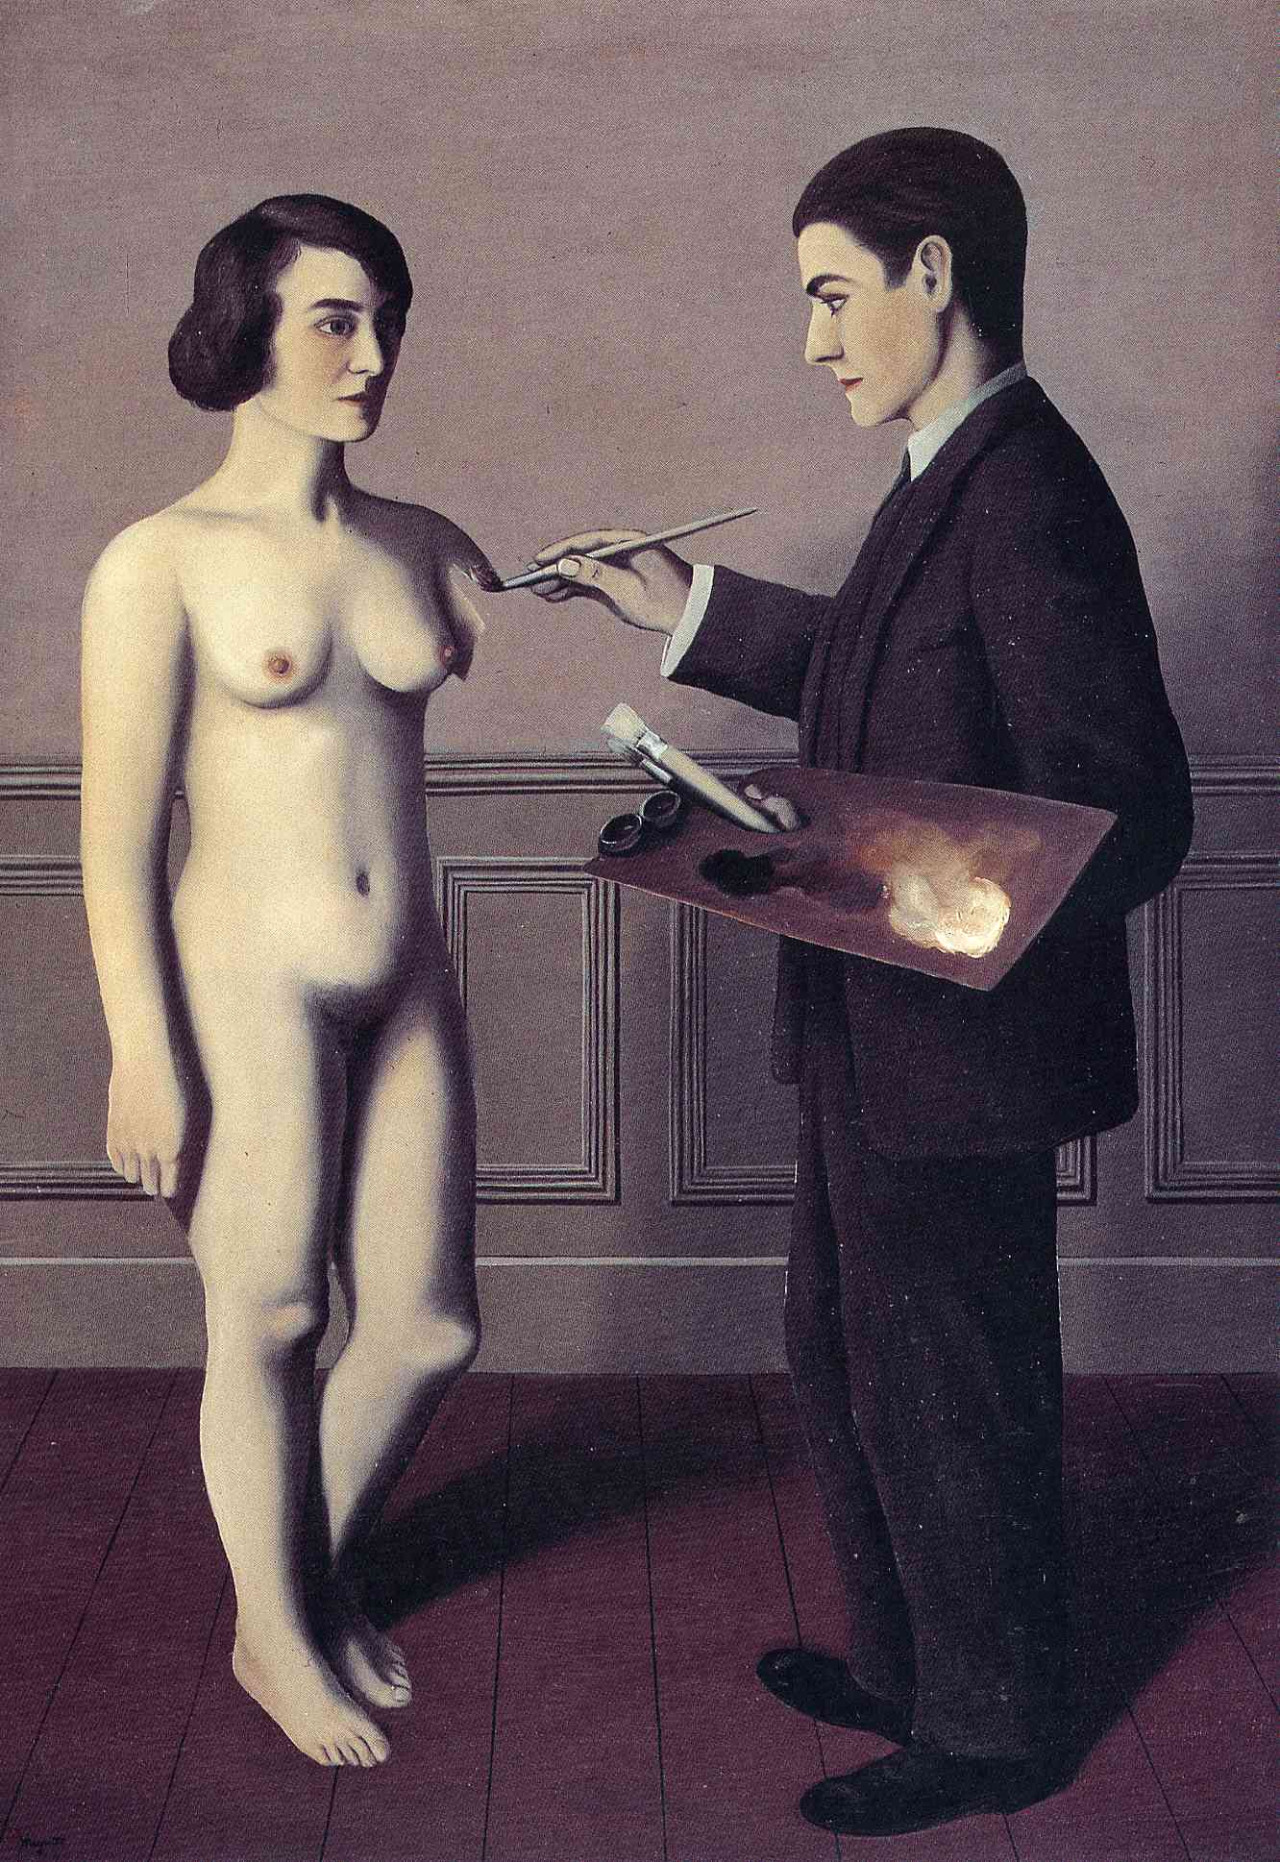 Magritte, attempting the impossible